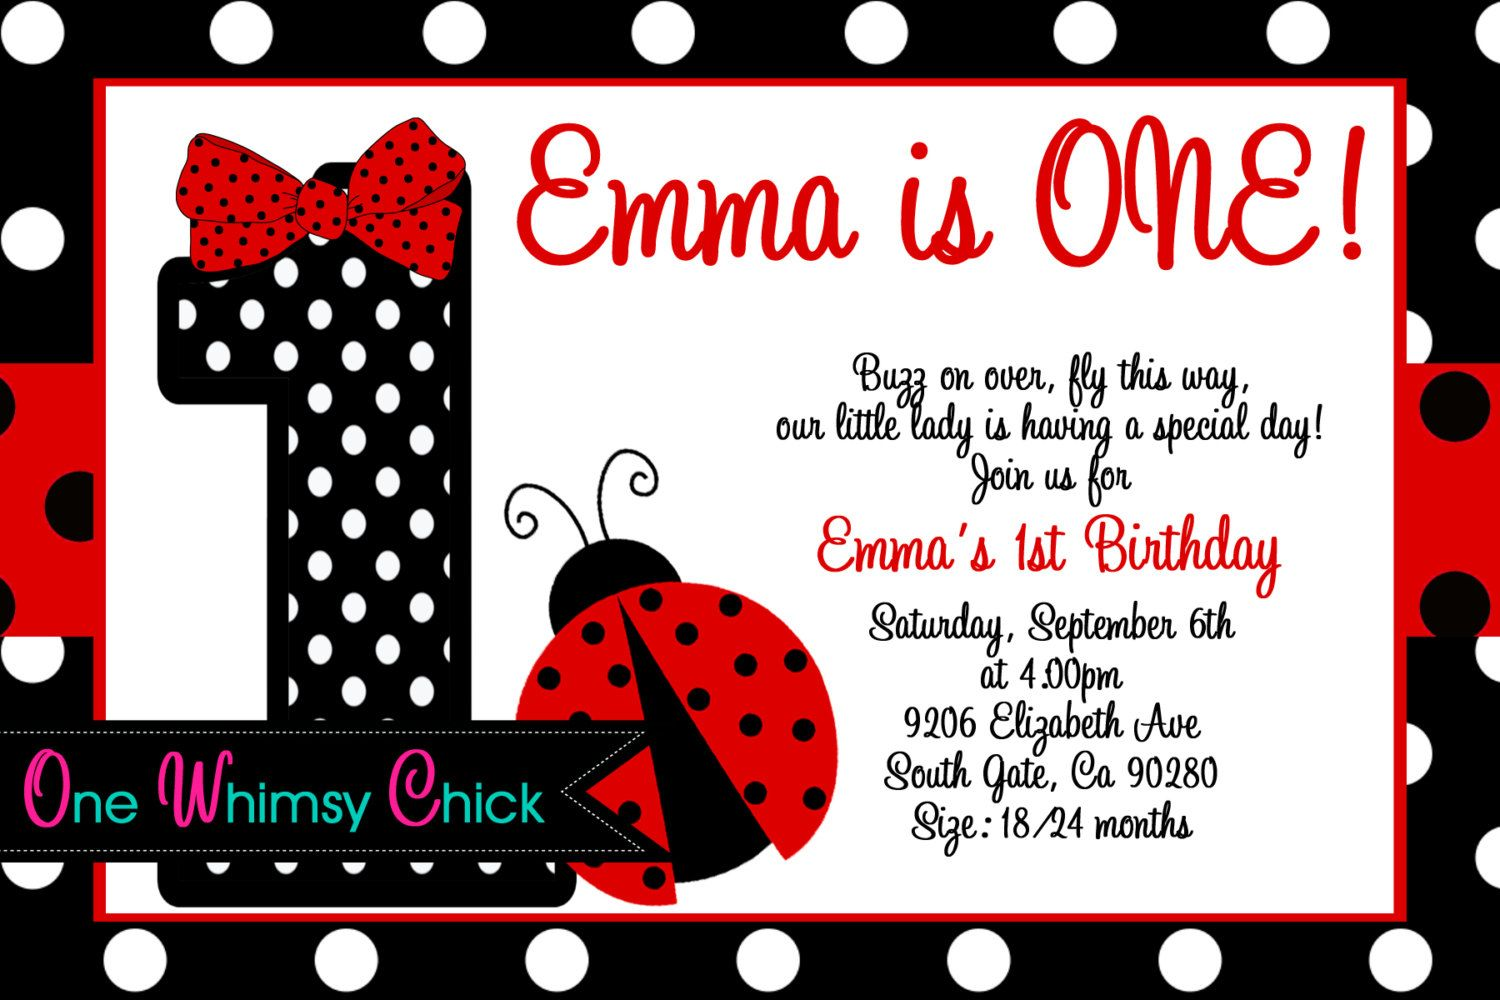 Ladybug birthday party invitations images invitation templates comfortable ladybug invitation template ideas entry level resume fine ladybug birthday invitations ideas invitation card ideas filmwisefo Choice Image